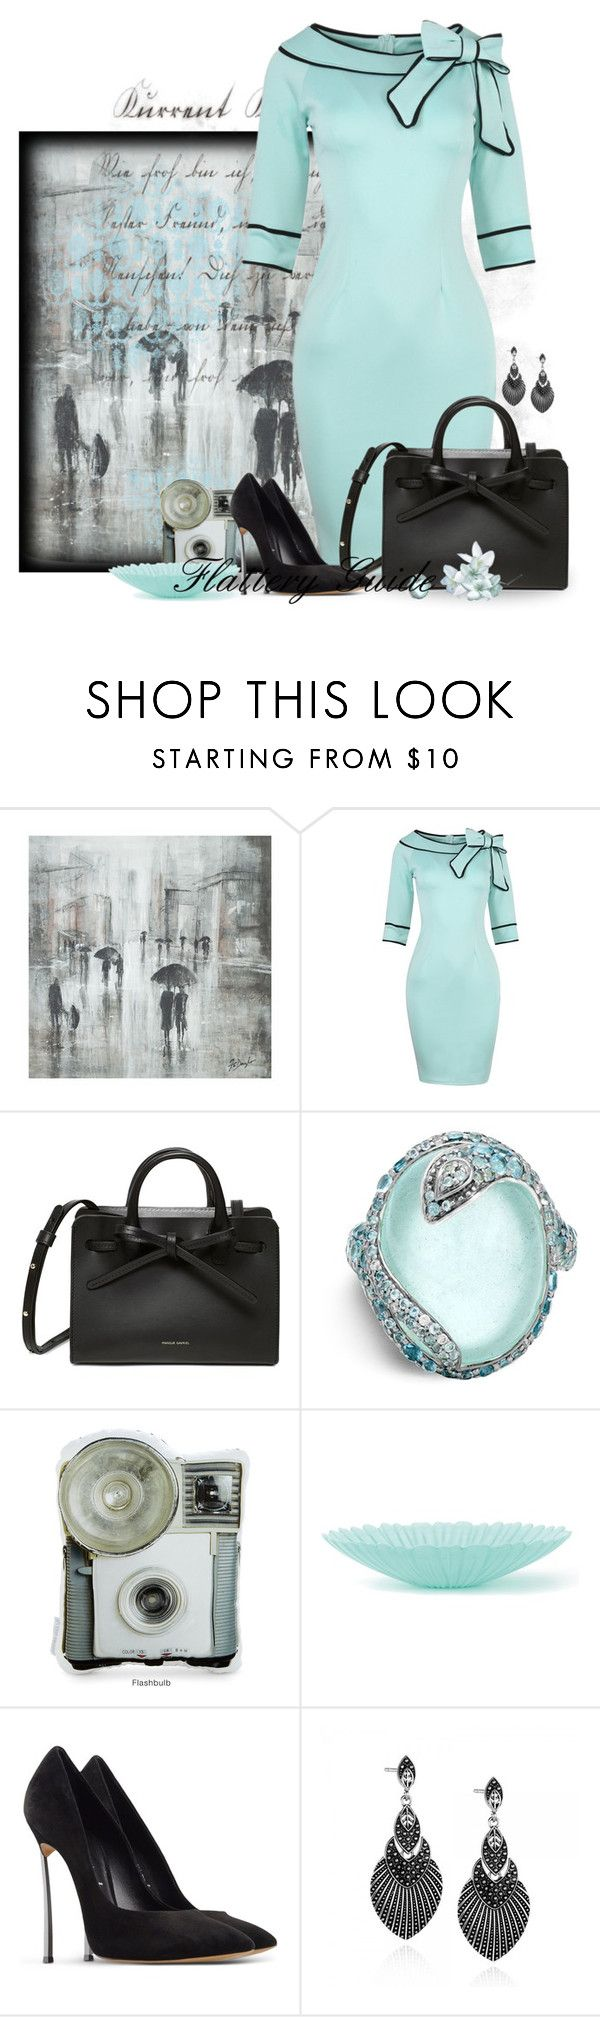 Sudatha by flattery-guide on Polyvore featuring Casadei, John Hardy and Leftbank Art